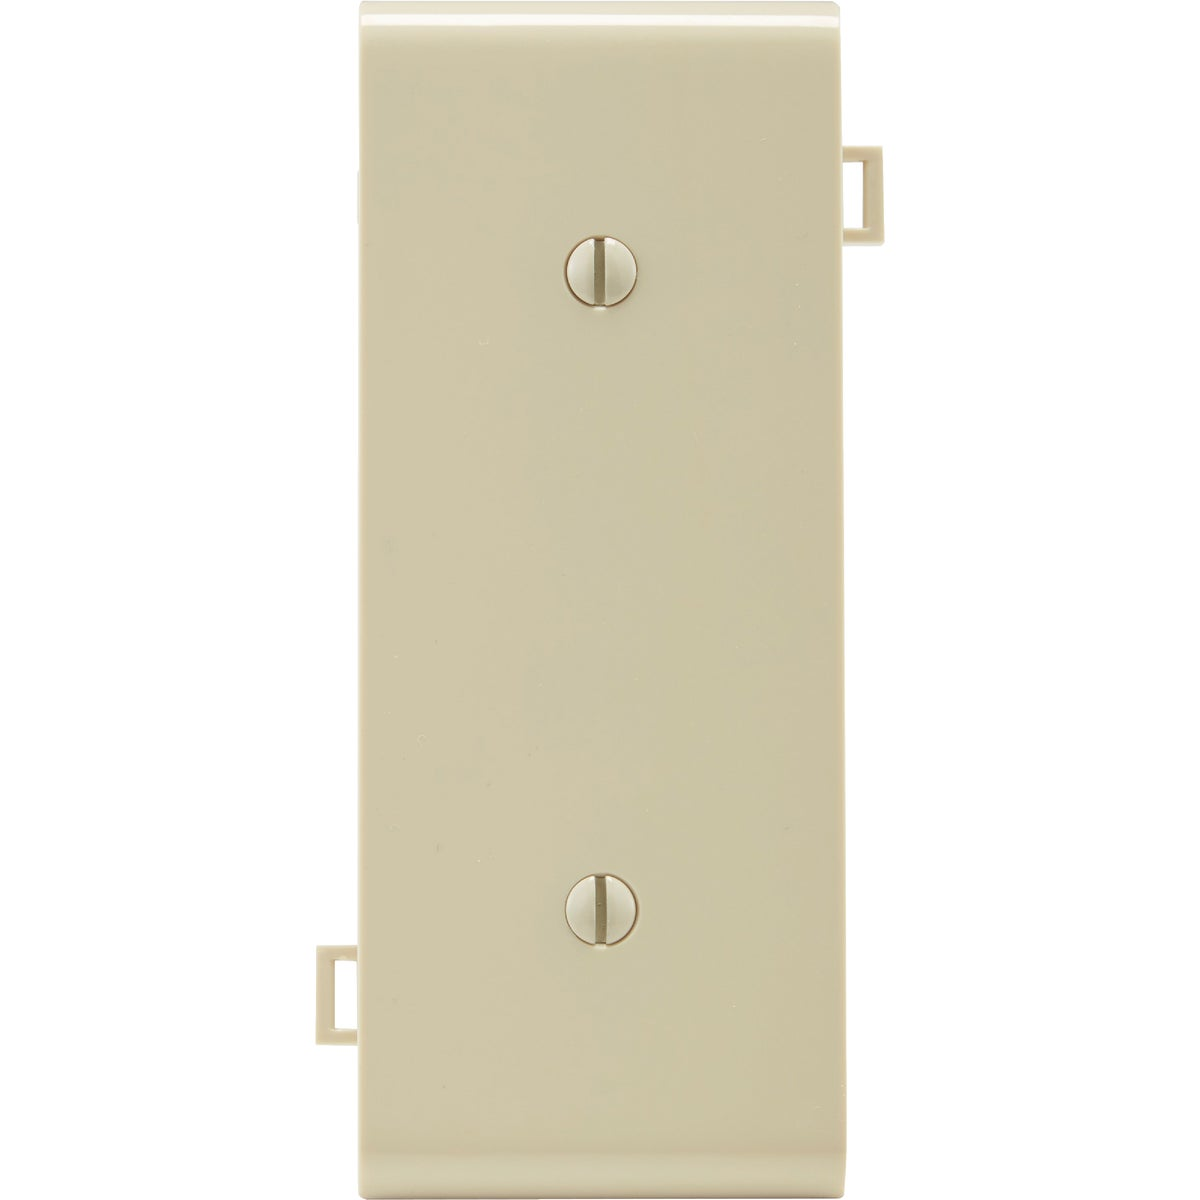 IV BLANK CENTER PLATE - 004-PSC14I by Leviton Mfg Co